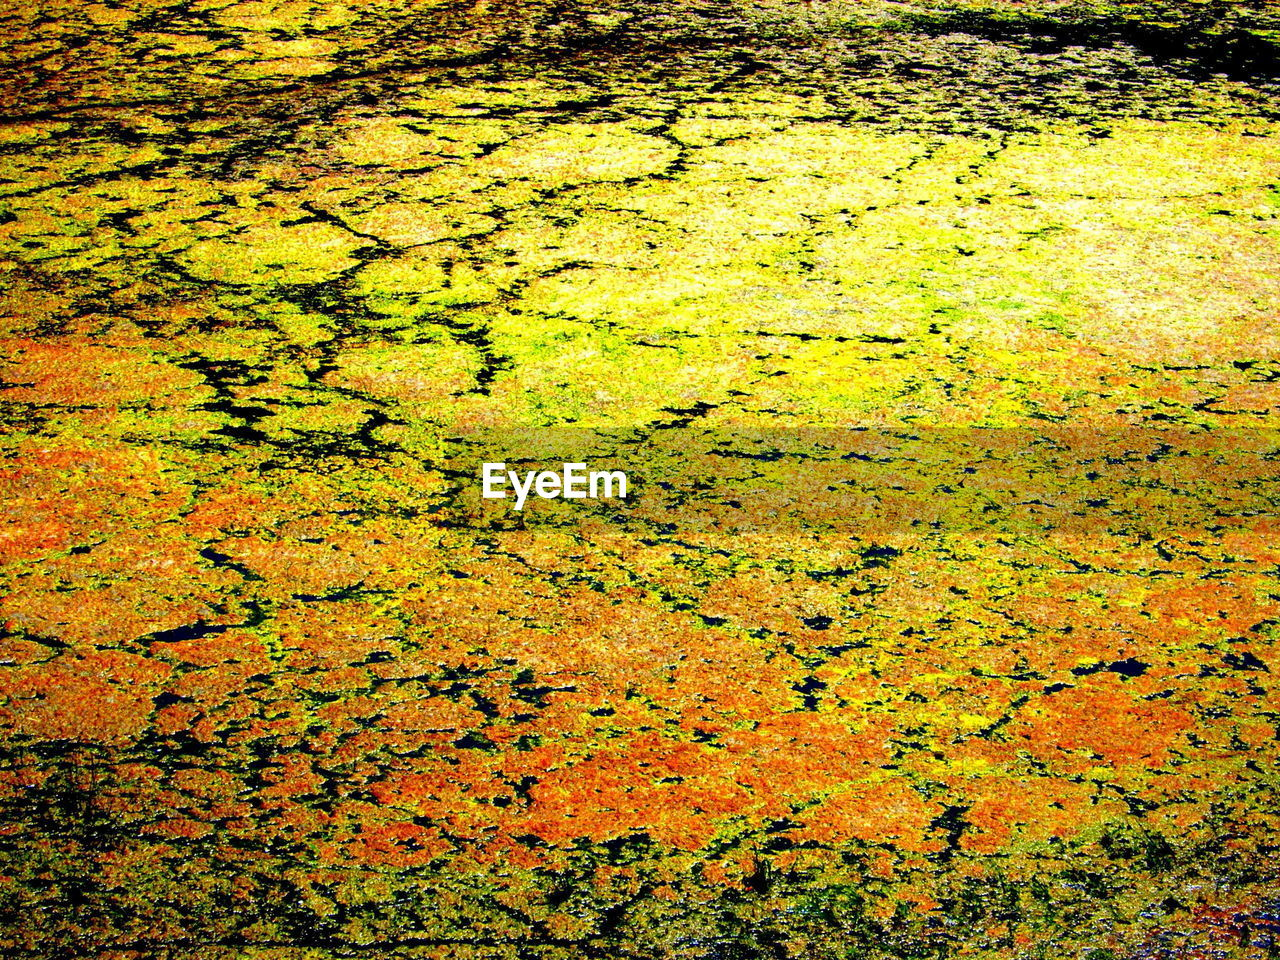 Close-up of algae in water